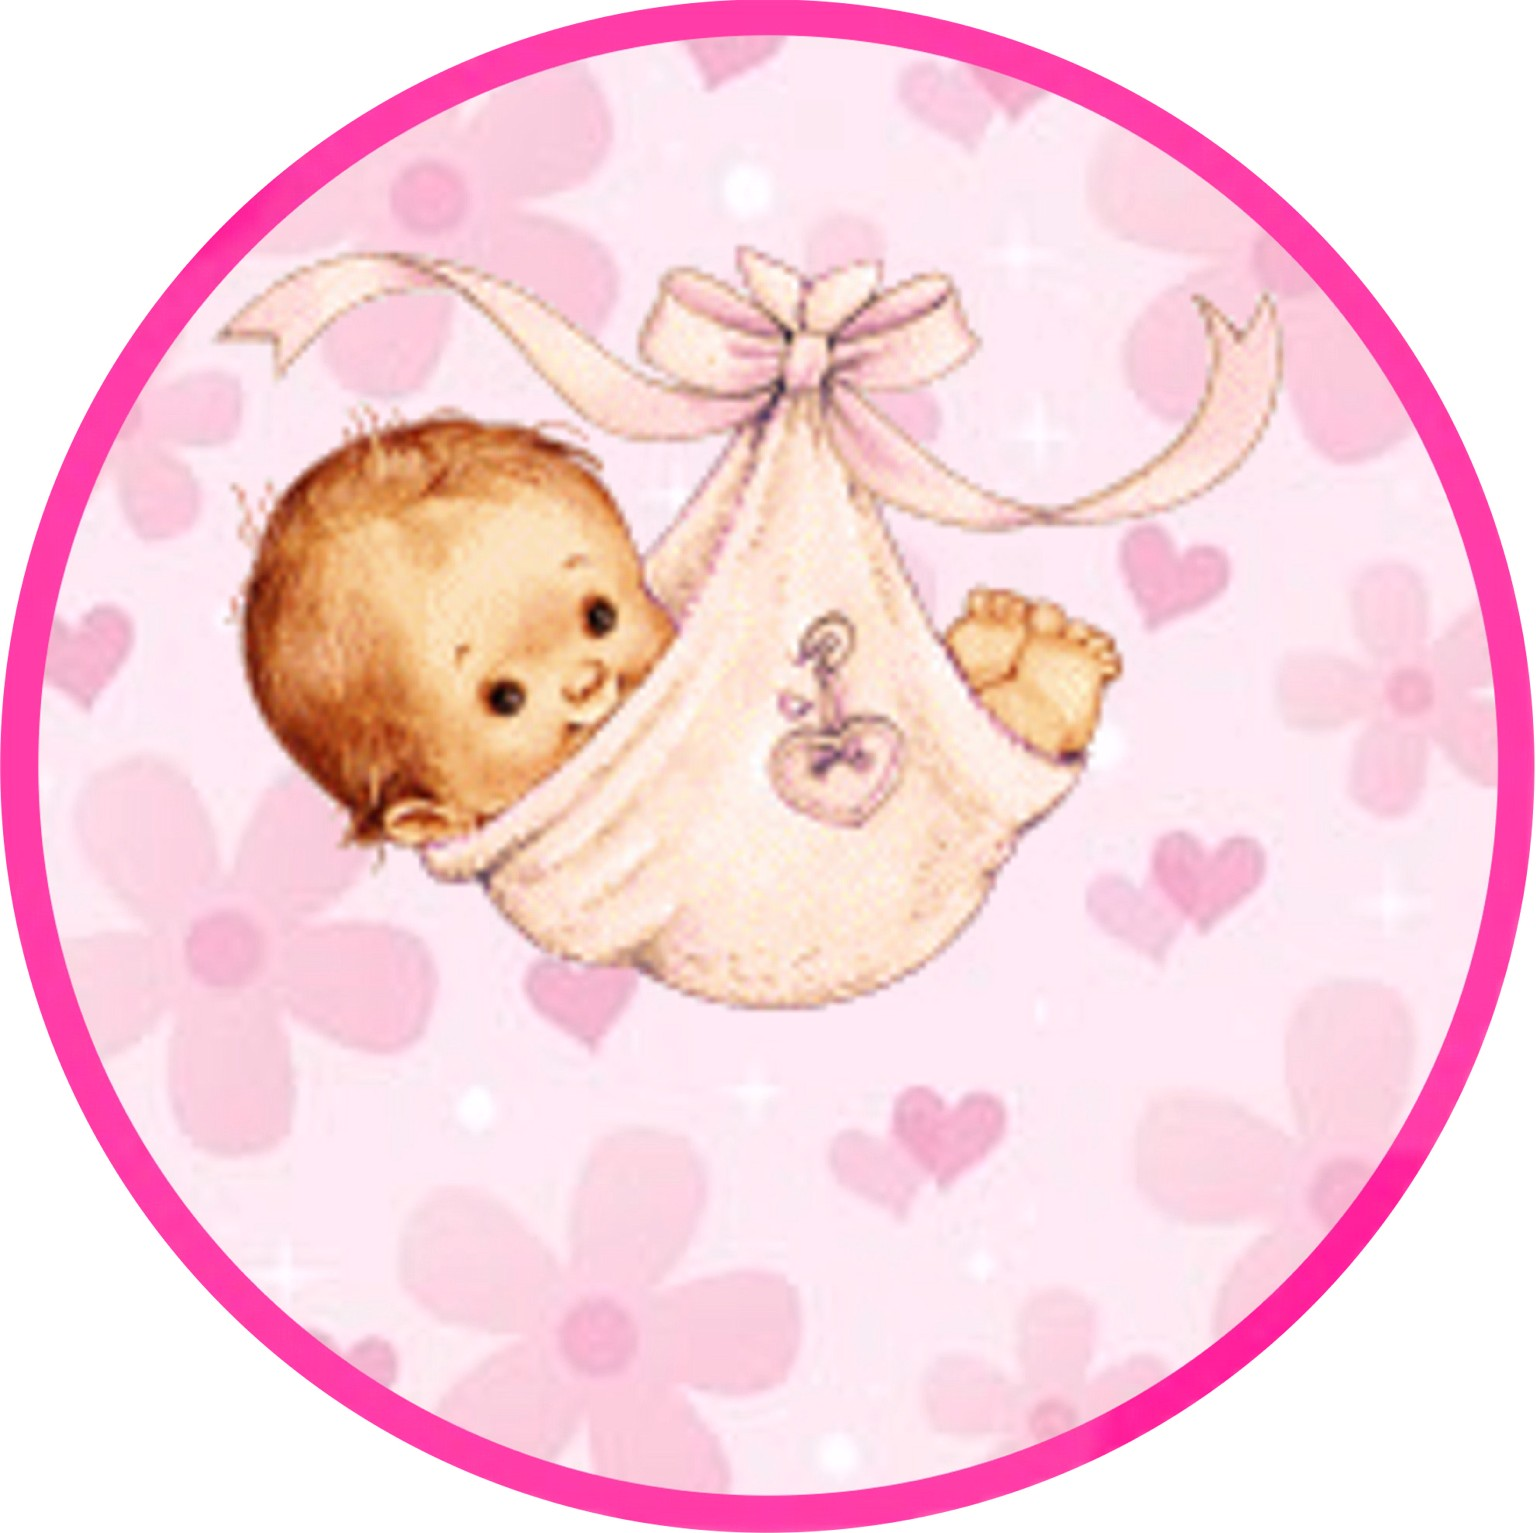 Manualidades de baby shower! Gratis: ideas de regalos y